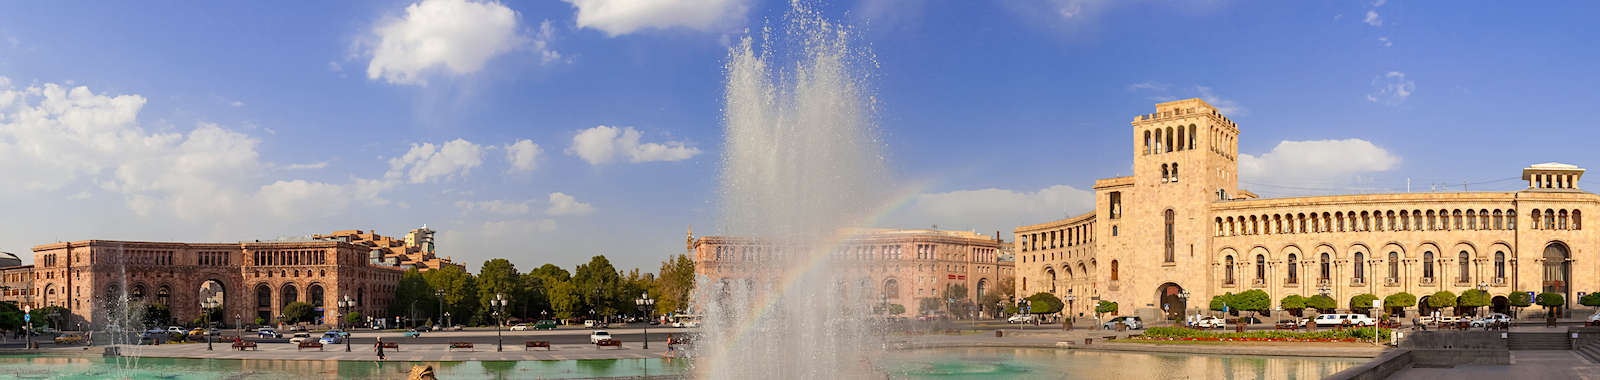 Discover Yerevan on a tailor-made holiday to Armenia